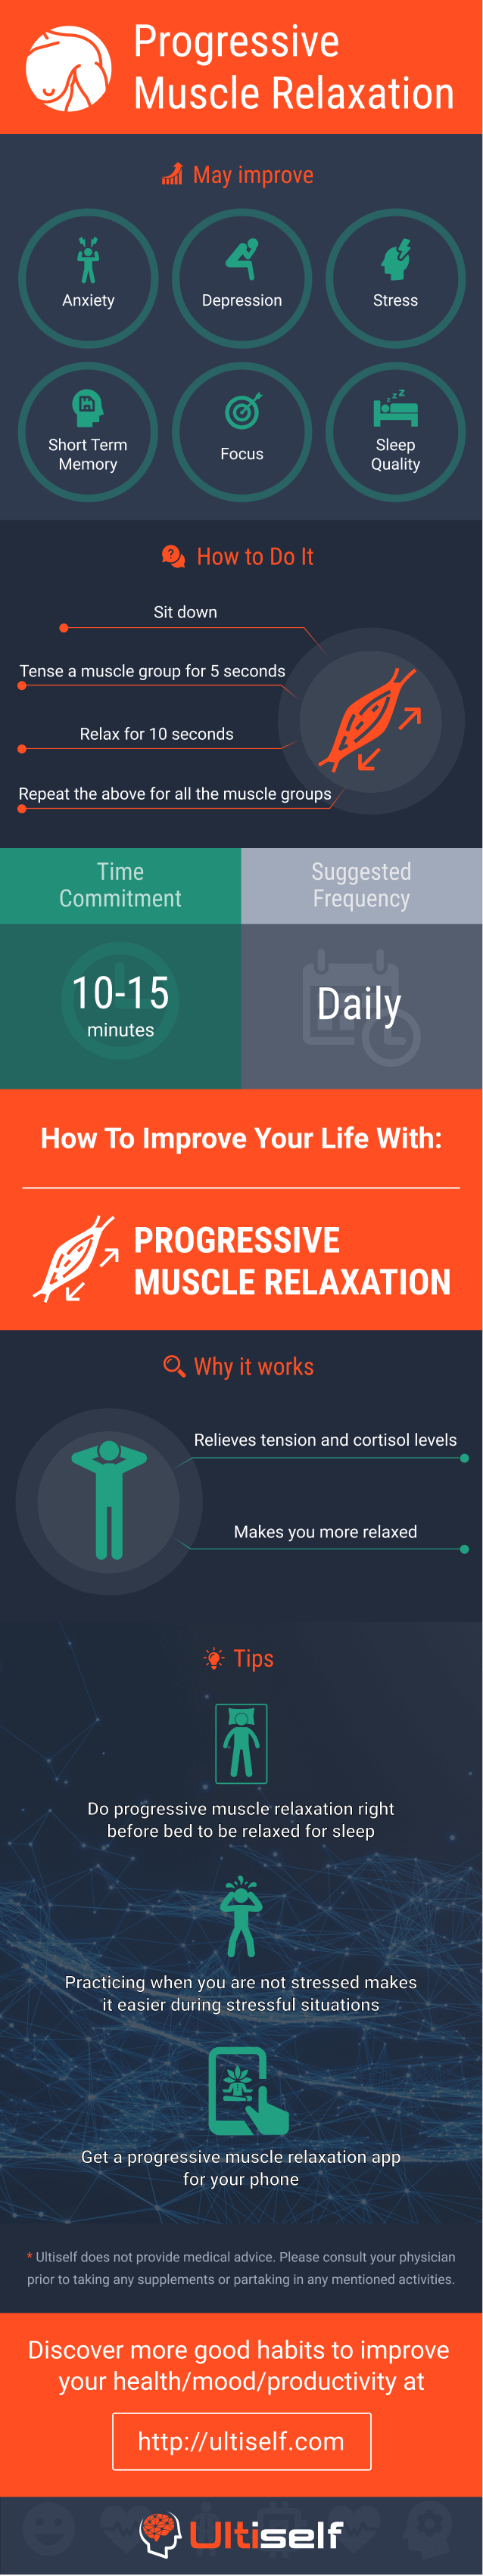 Progressive Muscle Relaxation infographic